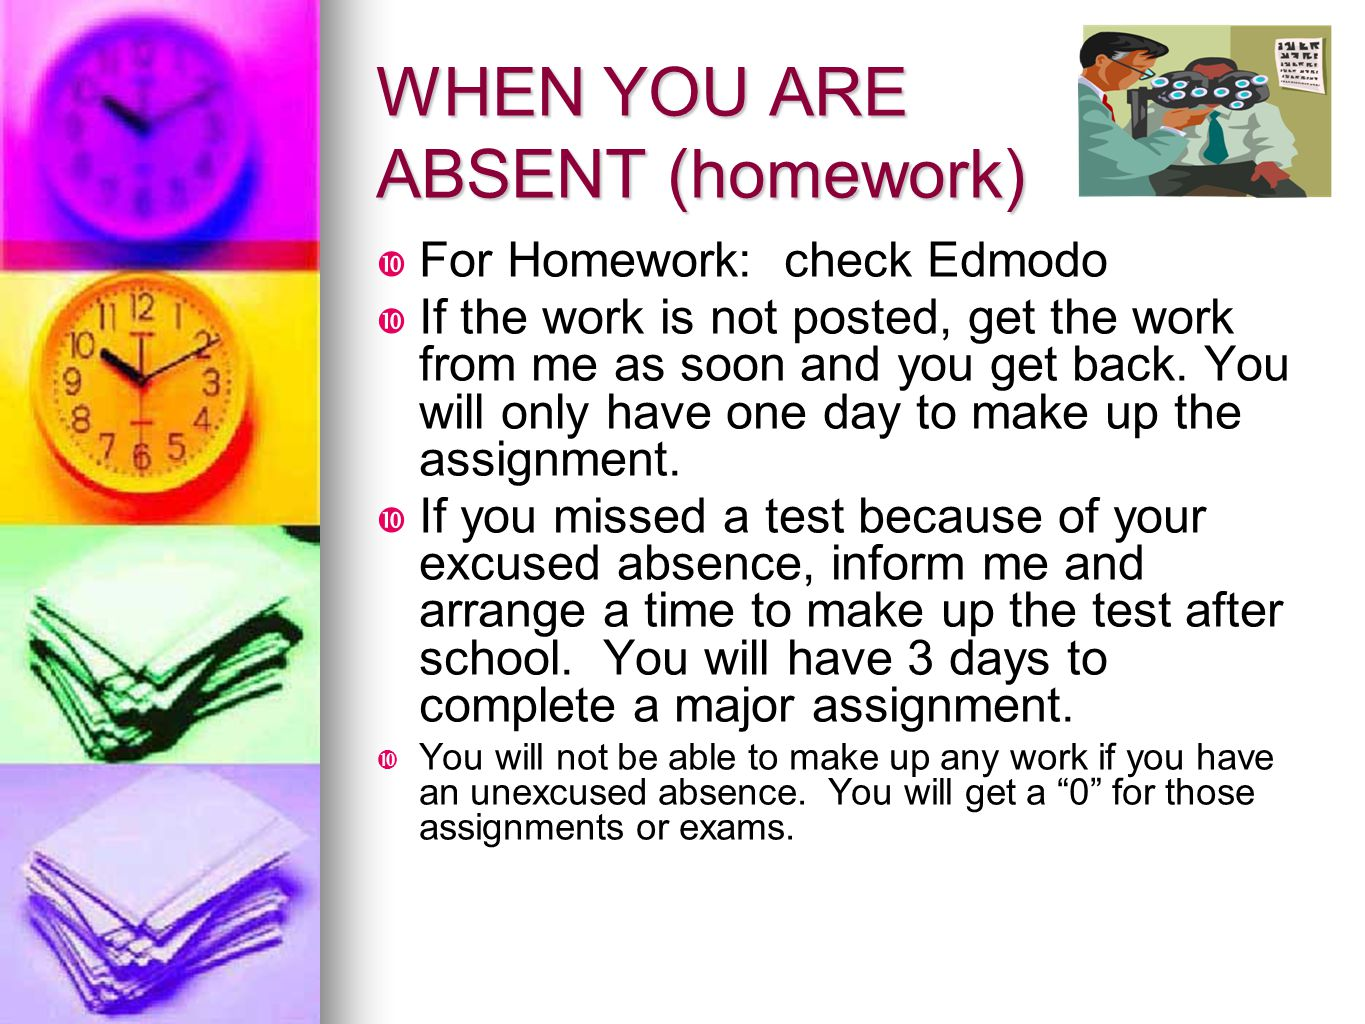 WHEN YOU ARE ABSENT (homework)